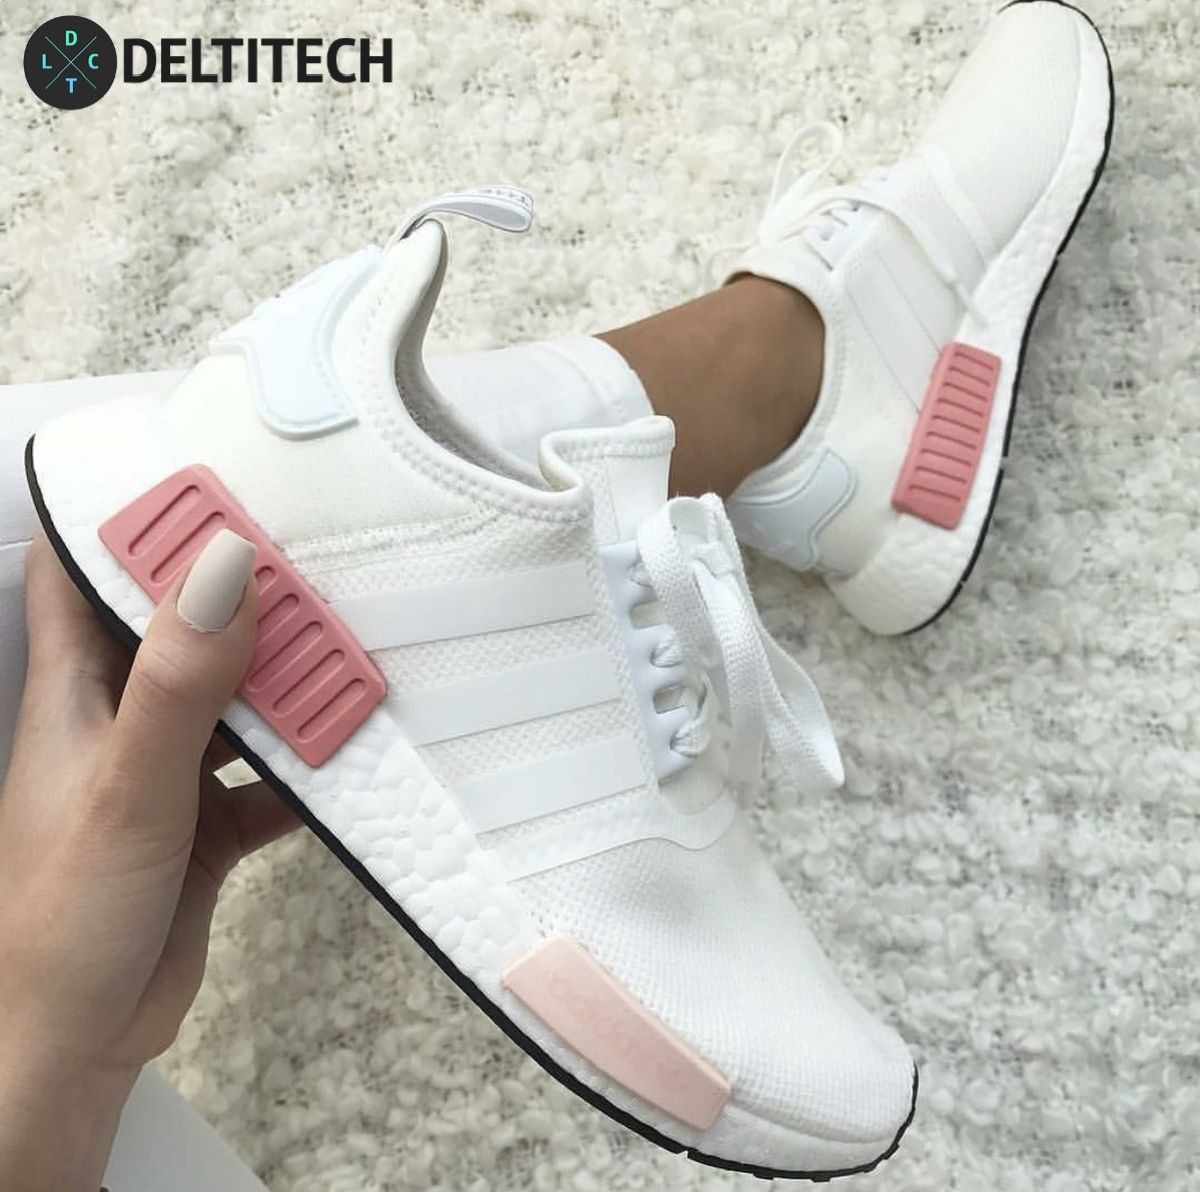 36ccaa6ecbce0 Adidas NMD R1 - Pink White Perfect For Your Girls Go See The Full  Collection On Our Site   -  DeltitechBrands.com  -  adidas  nmd  nmds  nmdr1